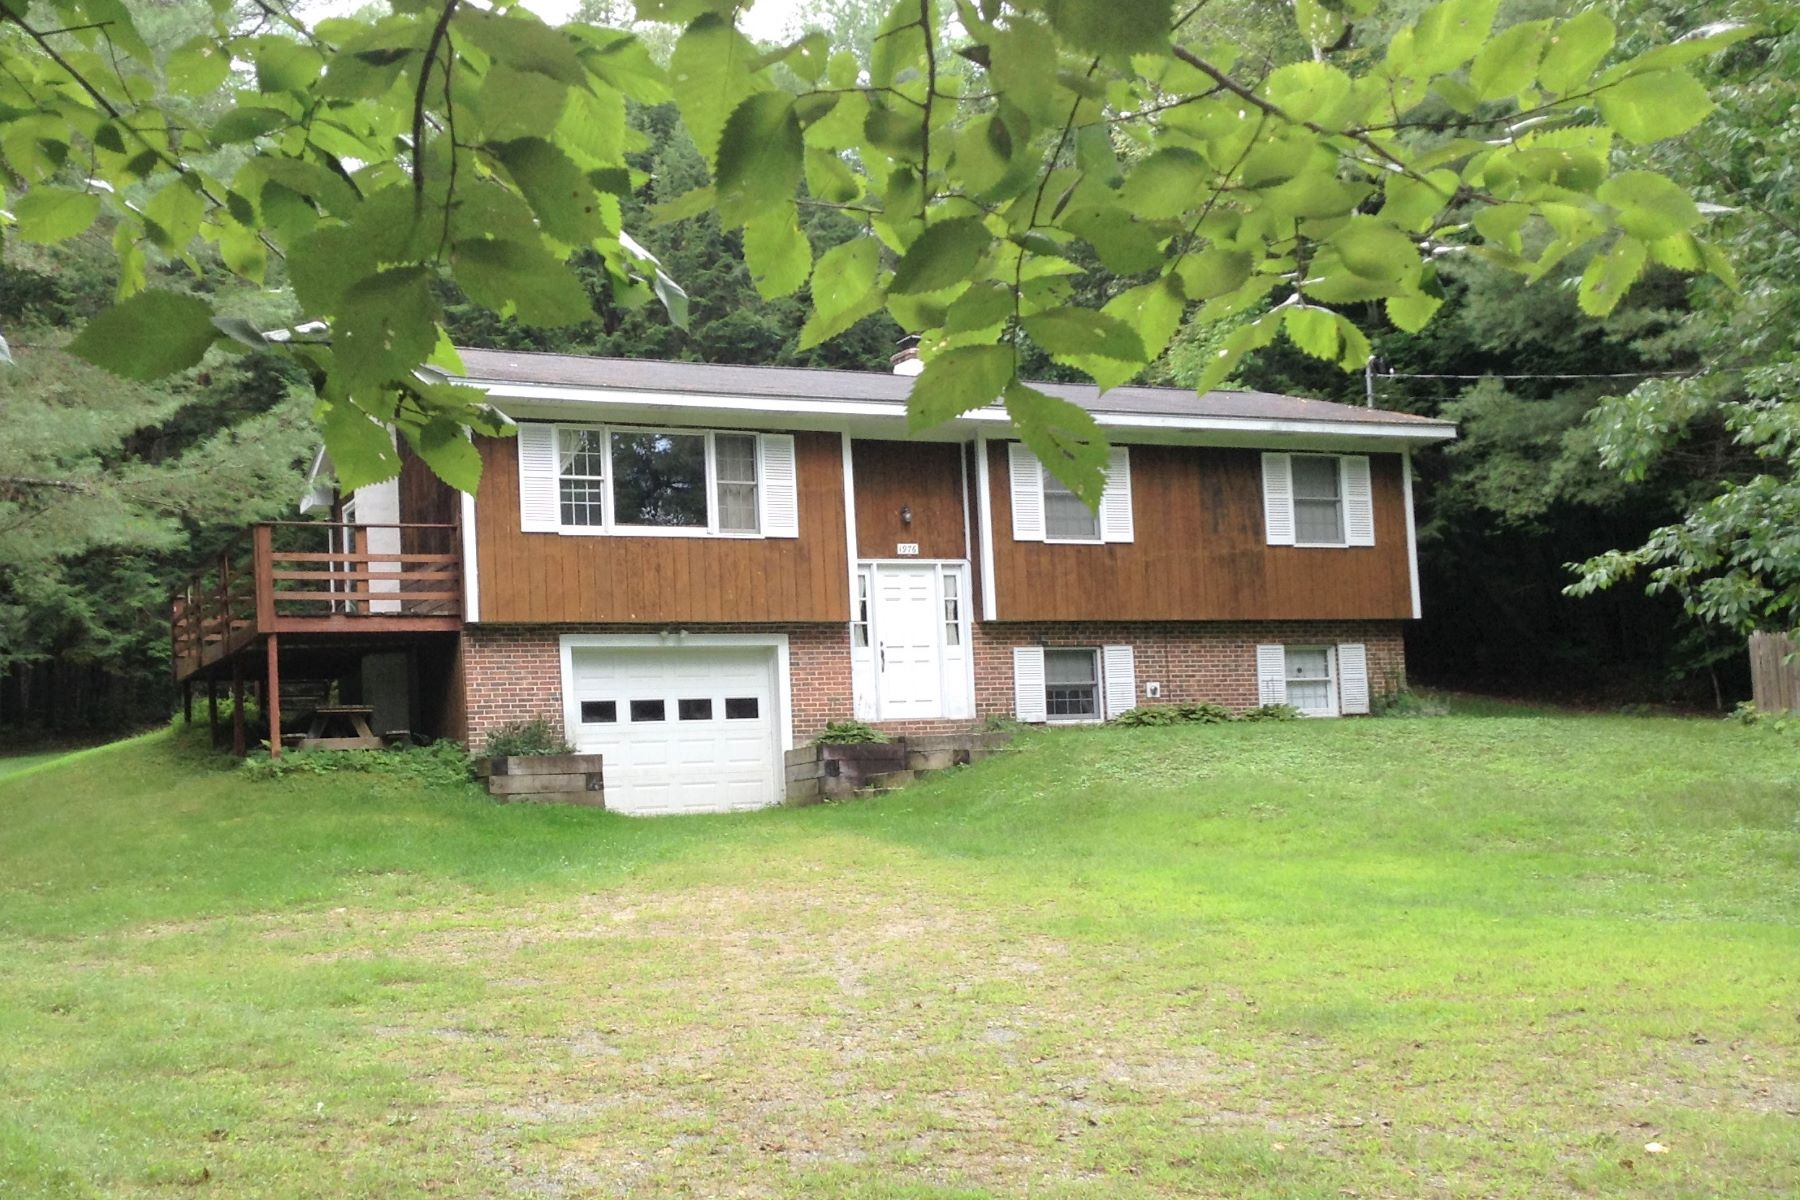 Single Family Home for Sale at 6318 Vermont Route 107, Stockbridge 6318 Vermont Route 107 Stockbridge, Vermont 05772 United States